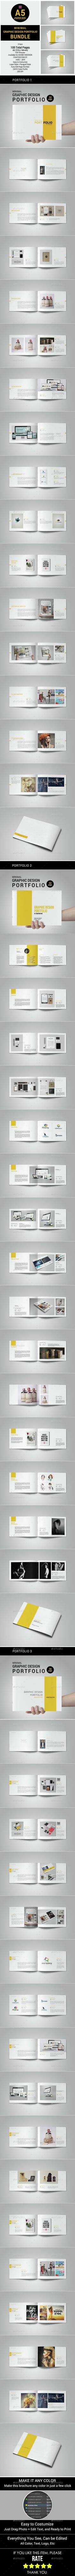 "Check out my @Behance project: ""Graphic Design Portfolio Template - BUNDLE"" https://www.behance.net/gallery/48771059/Graphic-Design-Portfolio-Template-BUNDLE"